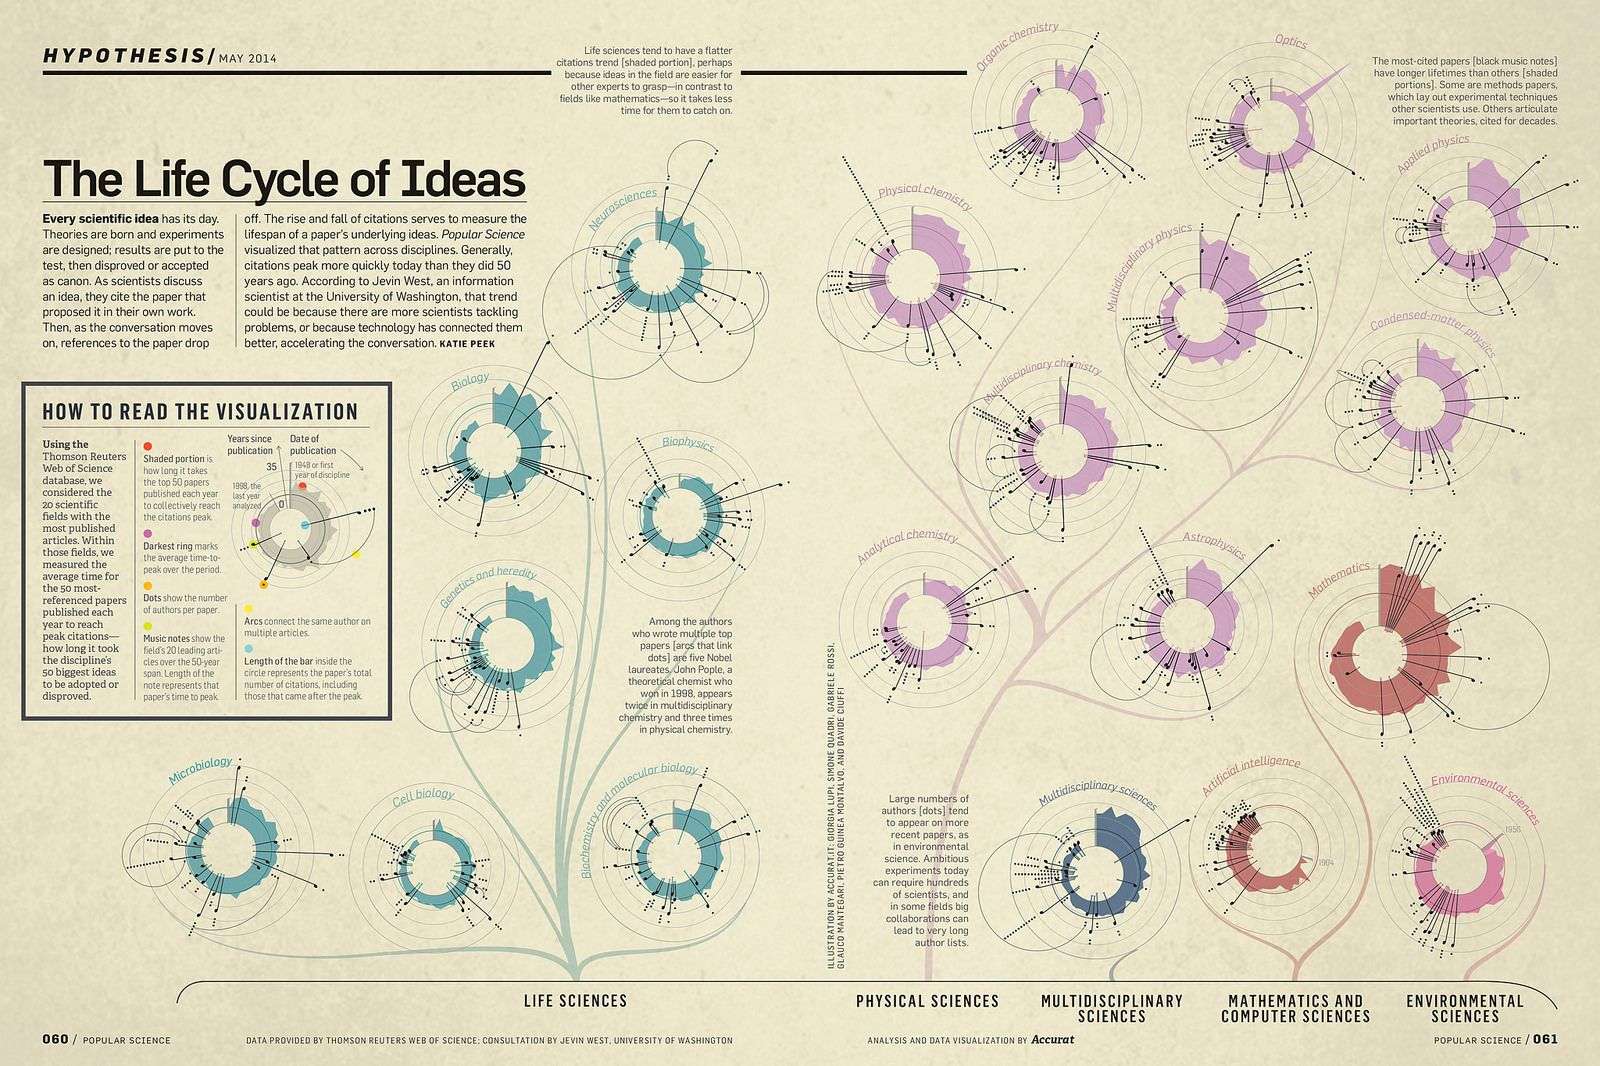 The Life Cycle of Ideas | Flickr - Photo Sharing!